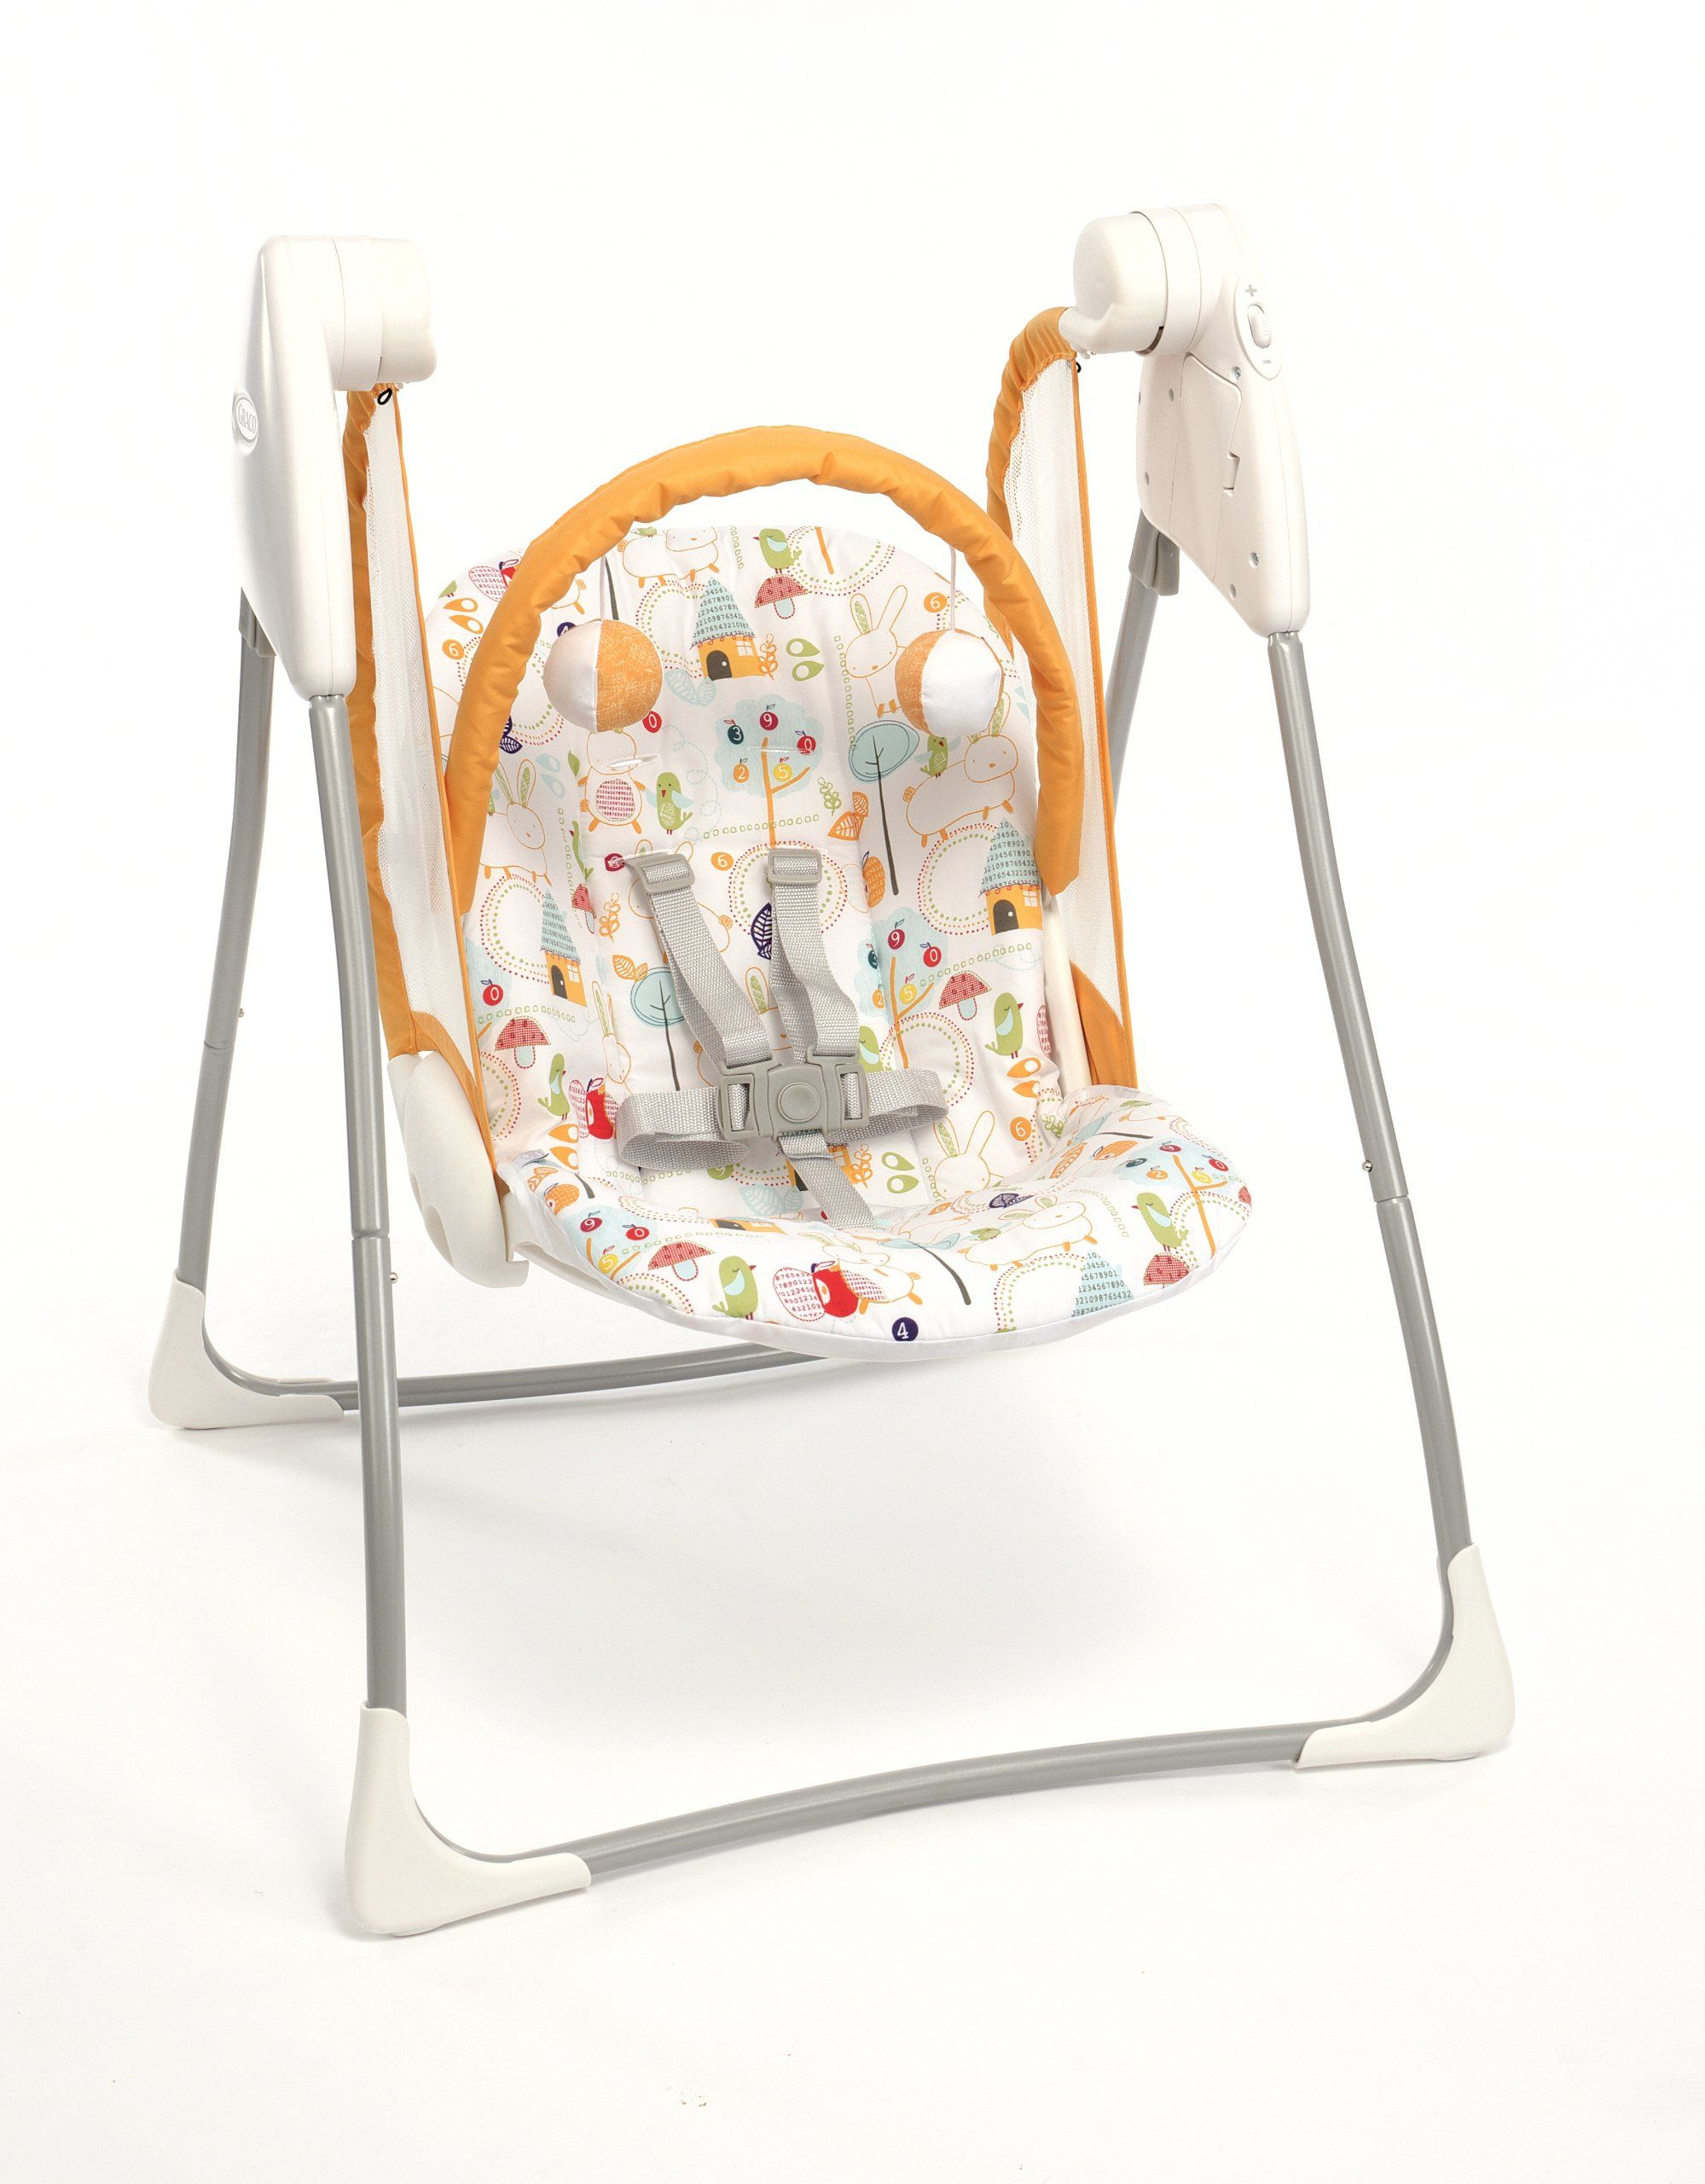 50debc3c5 Graco Baby Delight Swing (Hide & Seek) | Baby stuff | Baby swings ...